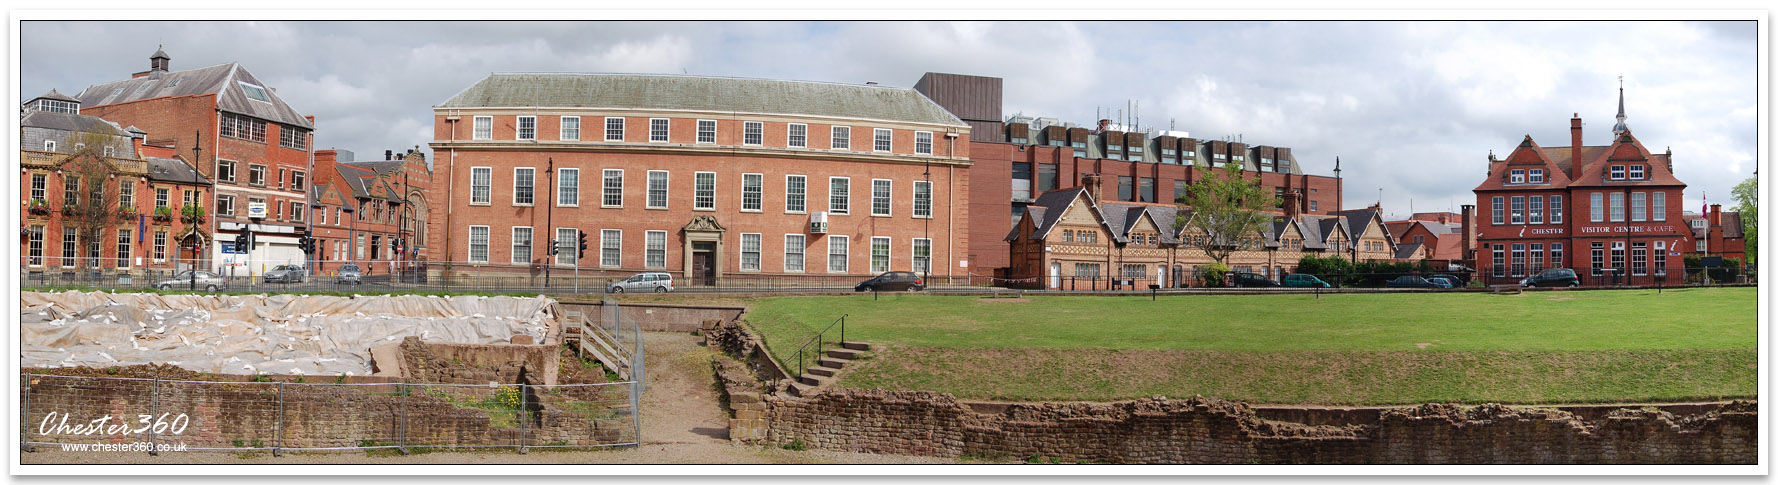 Panoramic Image of Chester Roman Amphitheatre